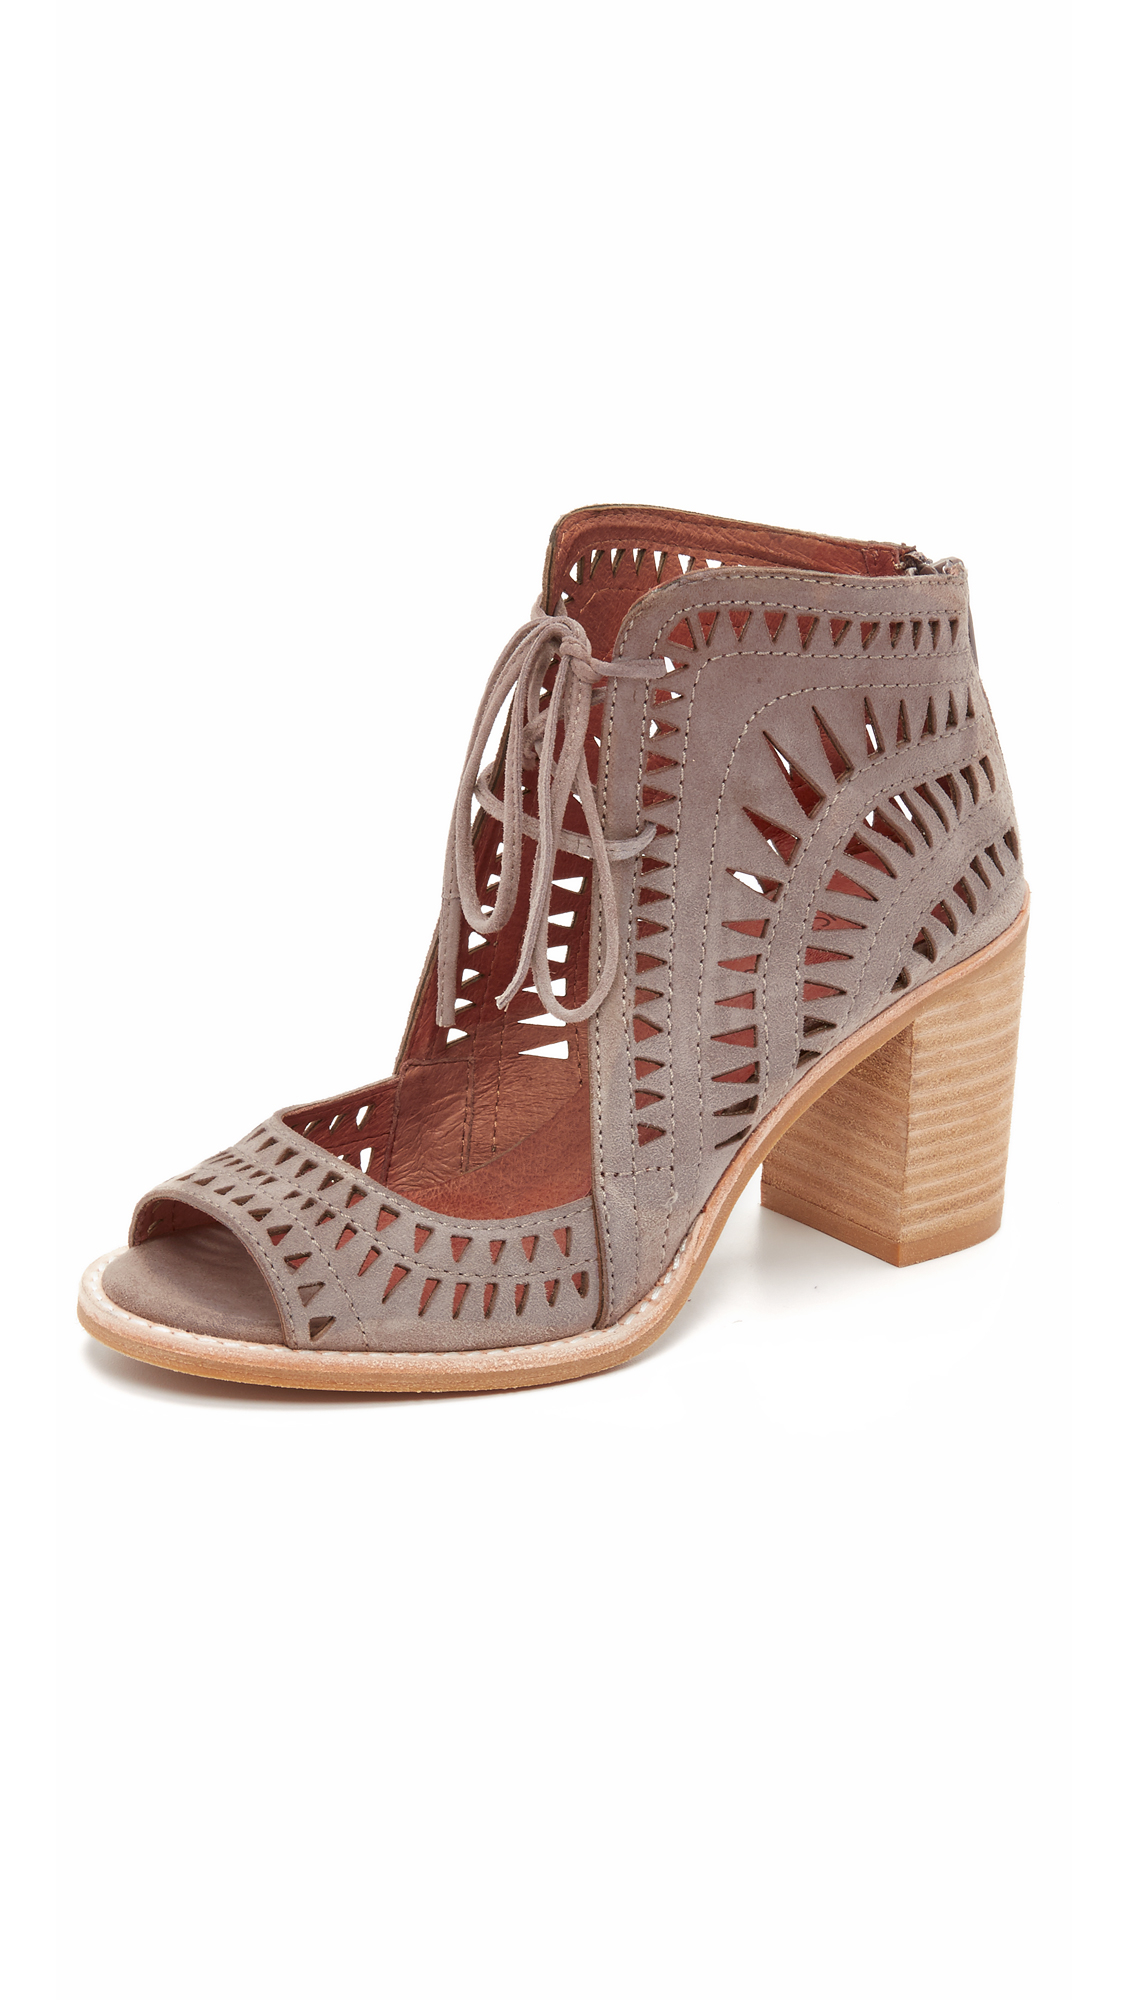 Jeffrey campbell cordillo sandals taupe in brown lyst Sdb chocolat taupe